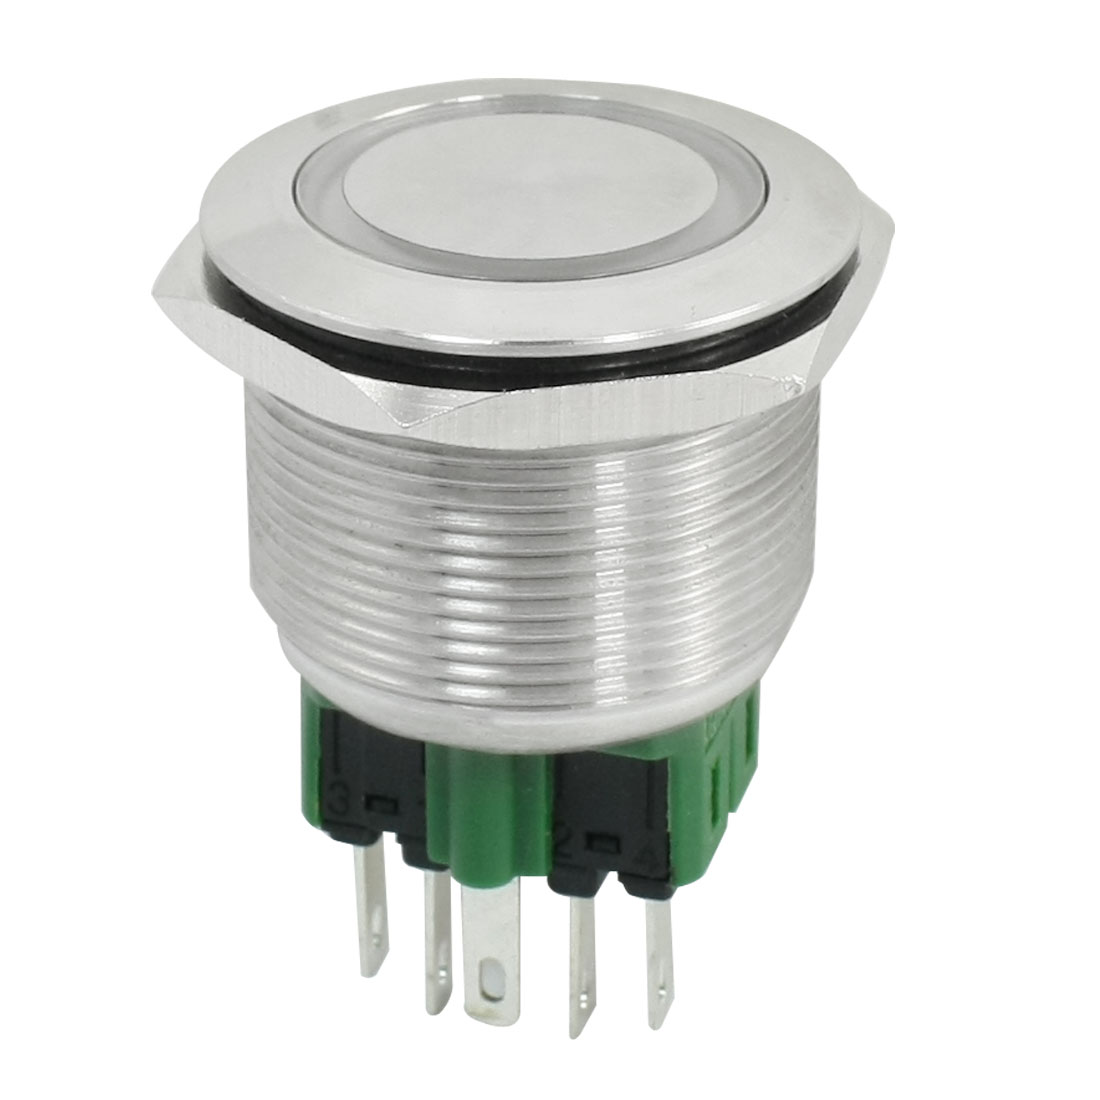 DC 24V Yellow Illuminated LED 25mm Momentary Push Button Switch SPDT